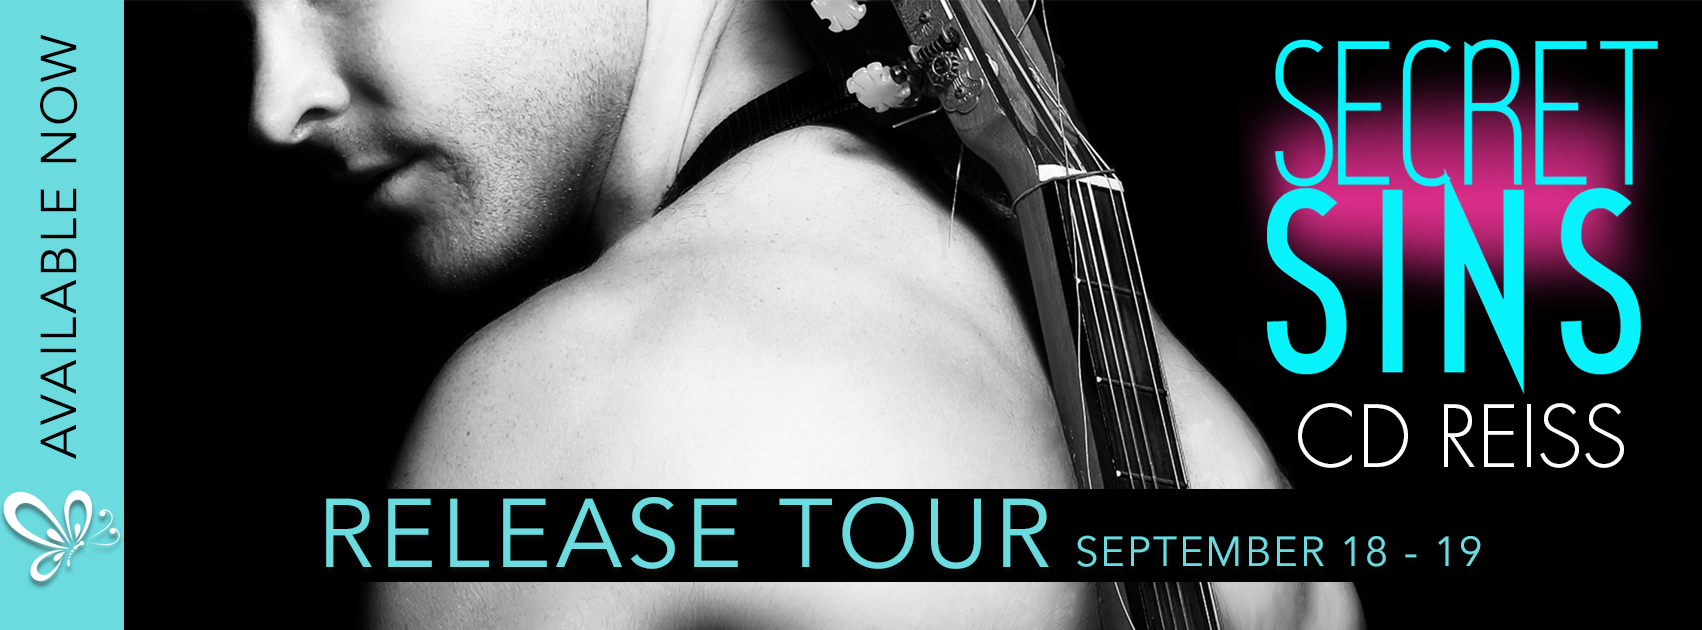 RELEASE BLITZ: SECRET SINS by CD Reiss